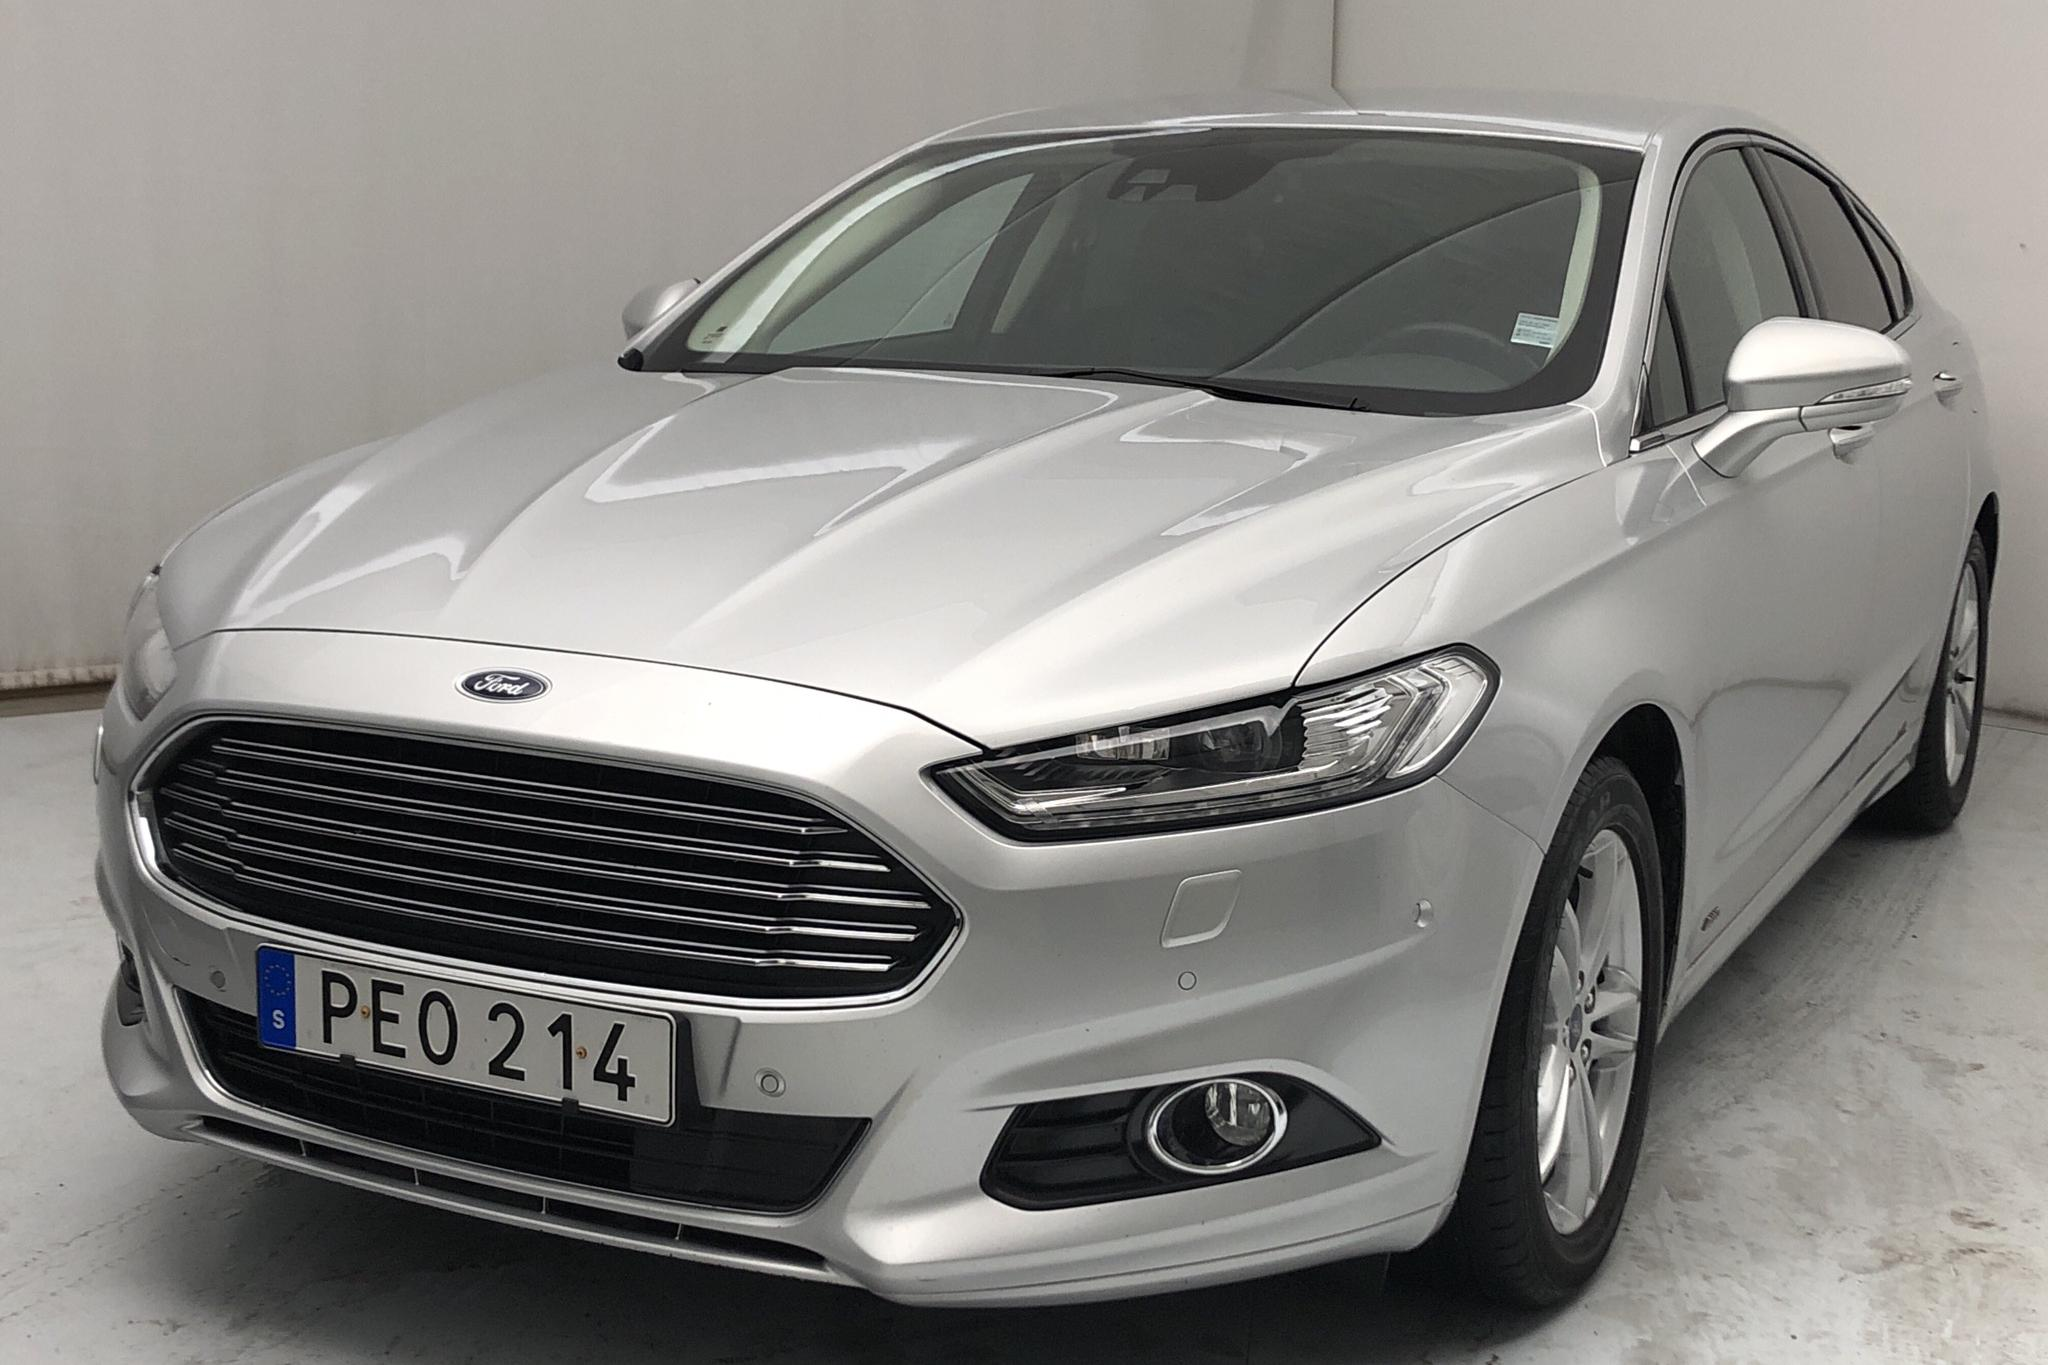 Ford Mondeo 2.0 TDCi AWD 5dr (180hk)